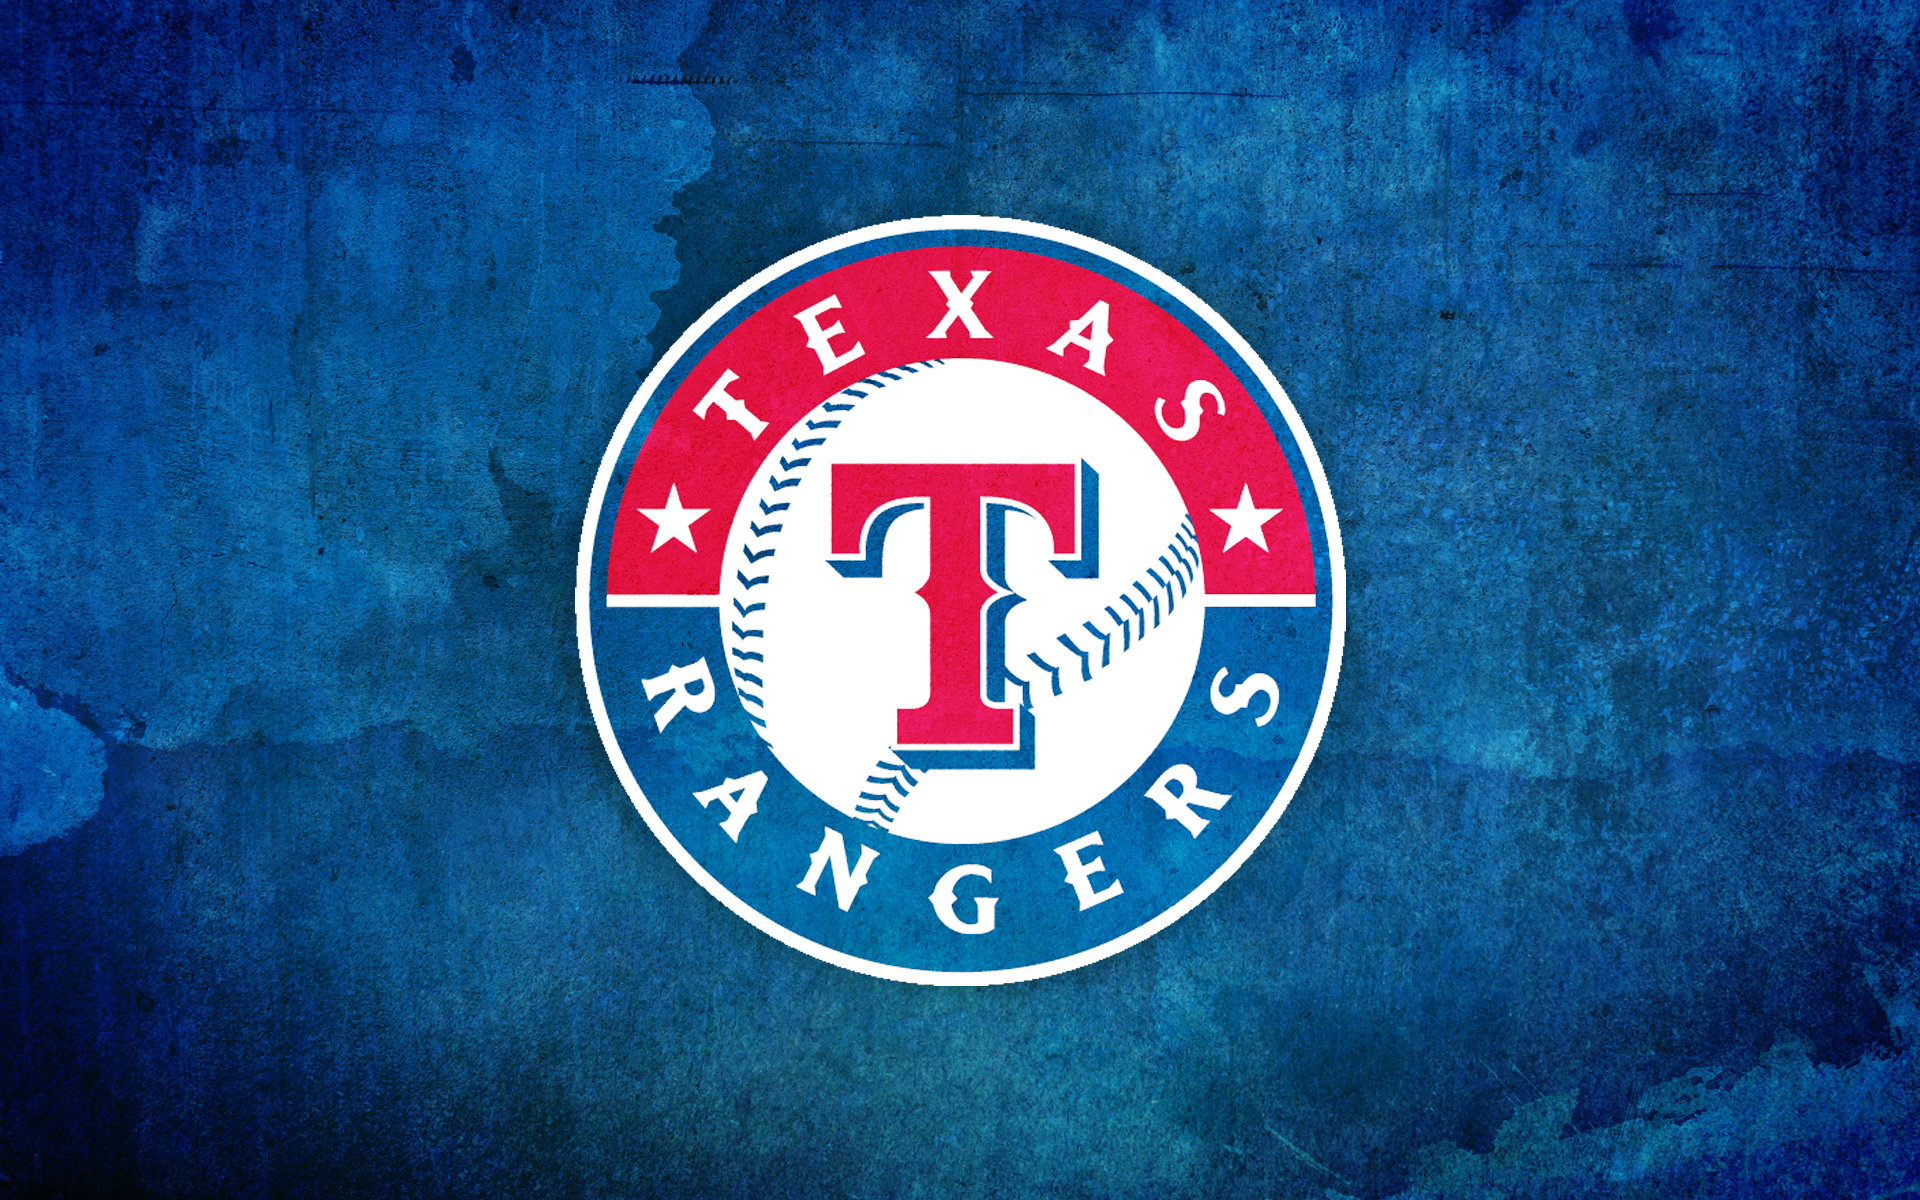 Download hd 1920x1200 Texas Rangers computer wallpaper ID:340704 for free